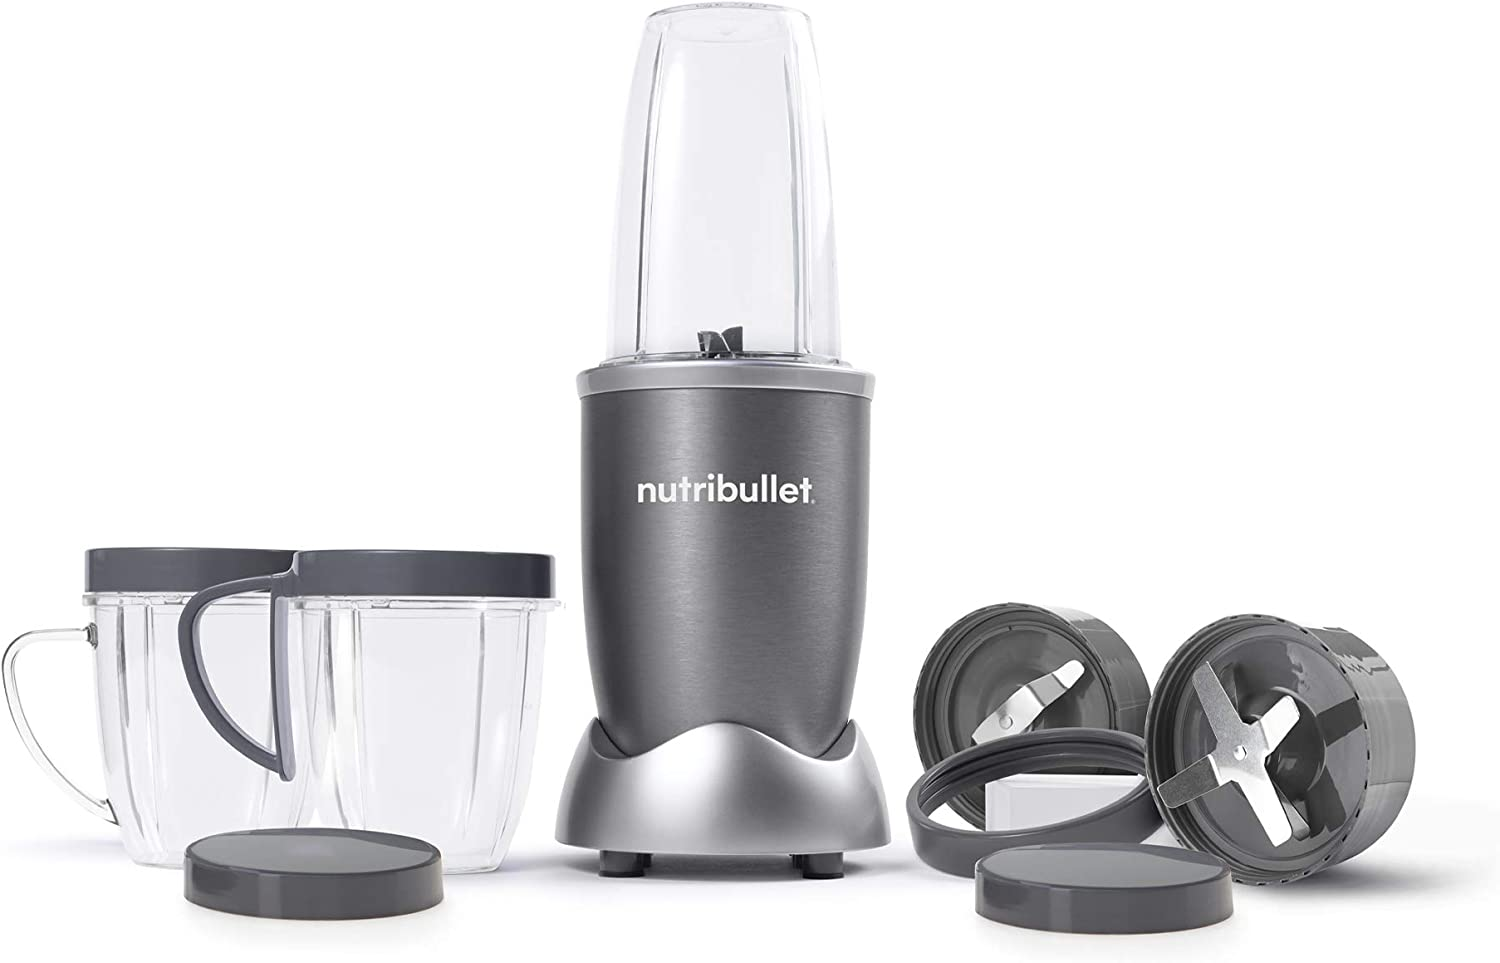 Best Blender Under $100 - NutriBullet NBR-1201 Blender